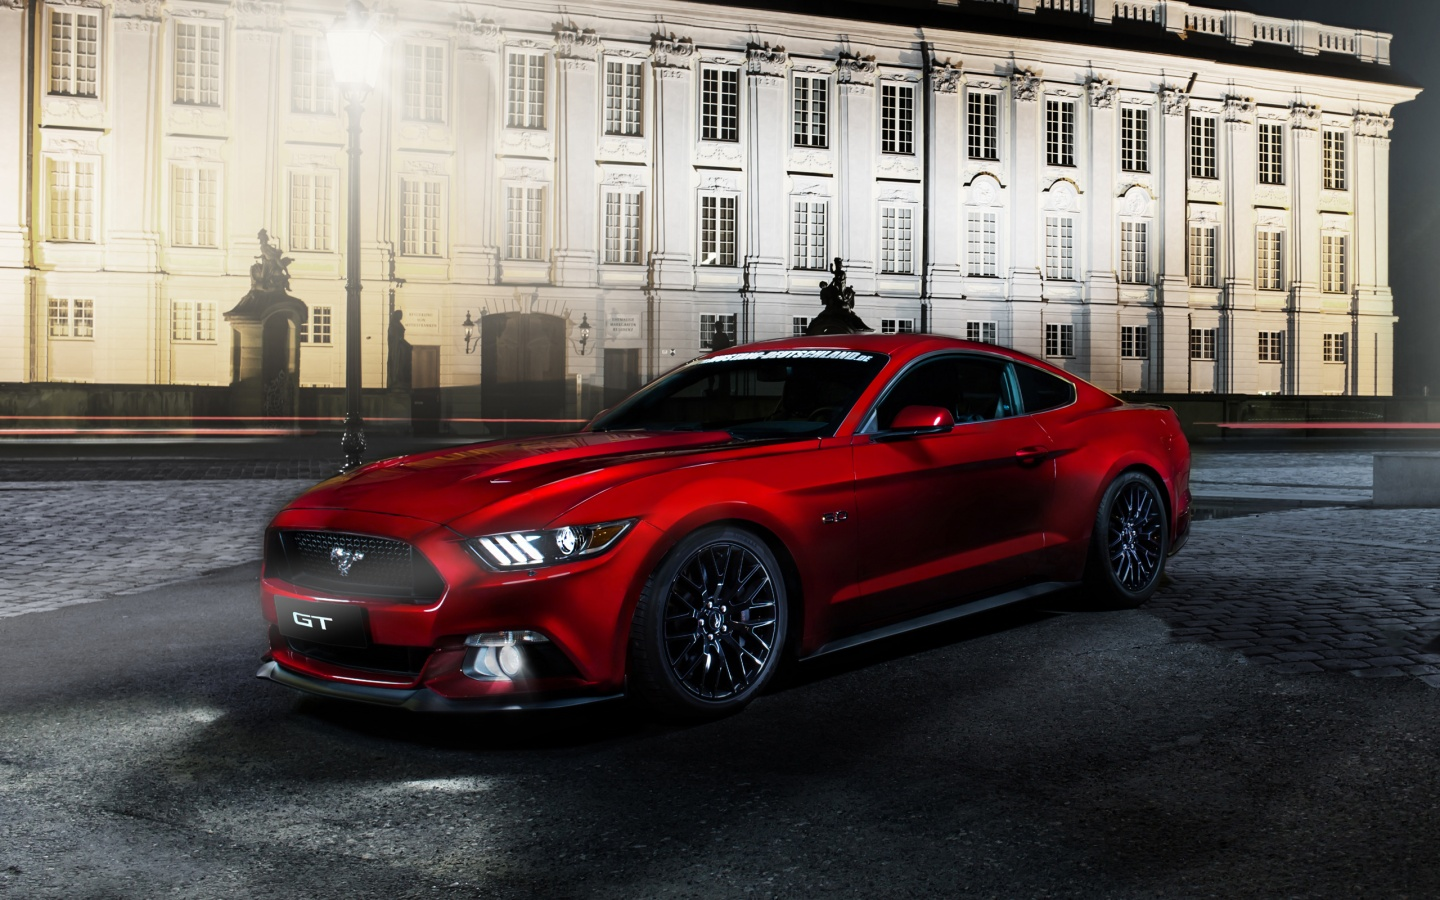 2015 Ford Mustang GT 1440x900